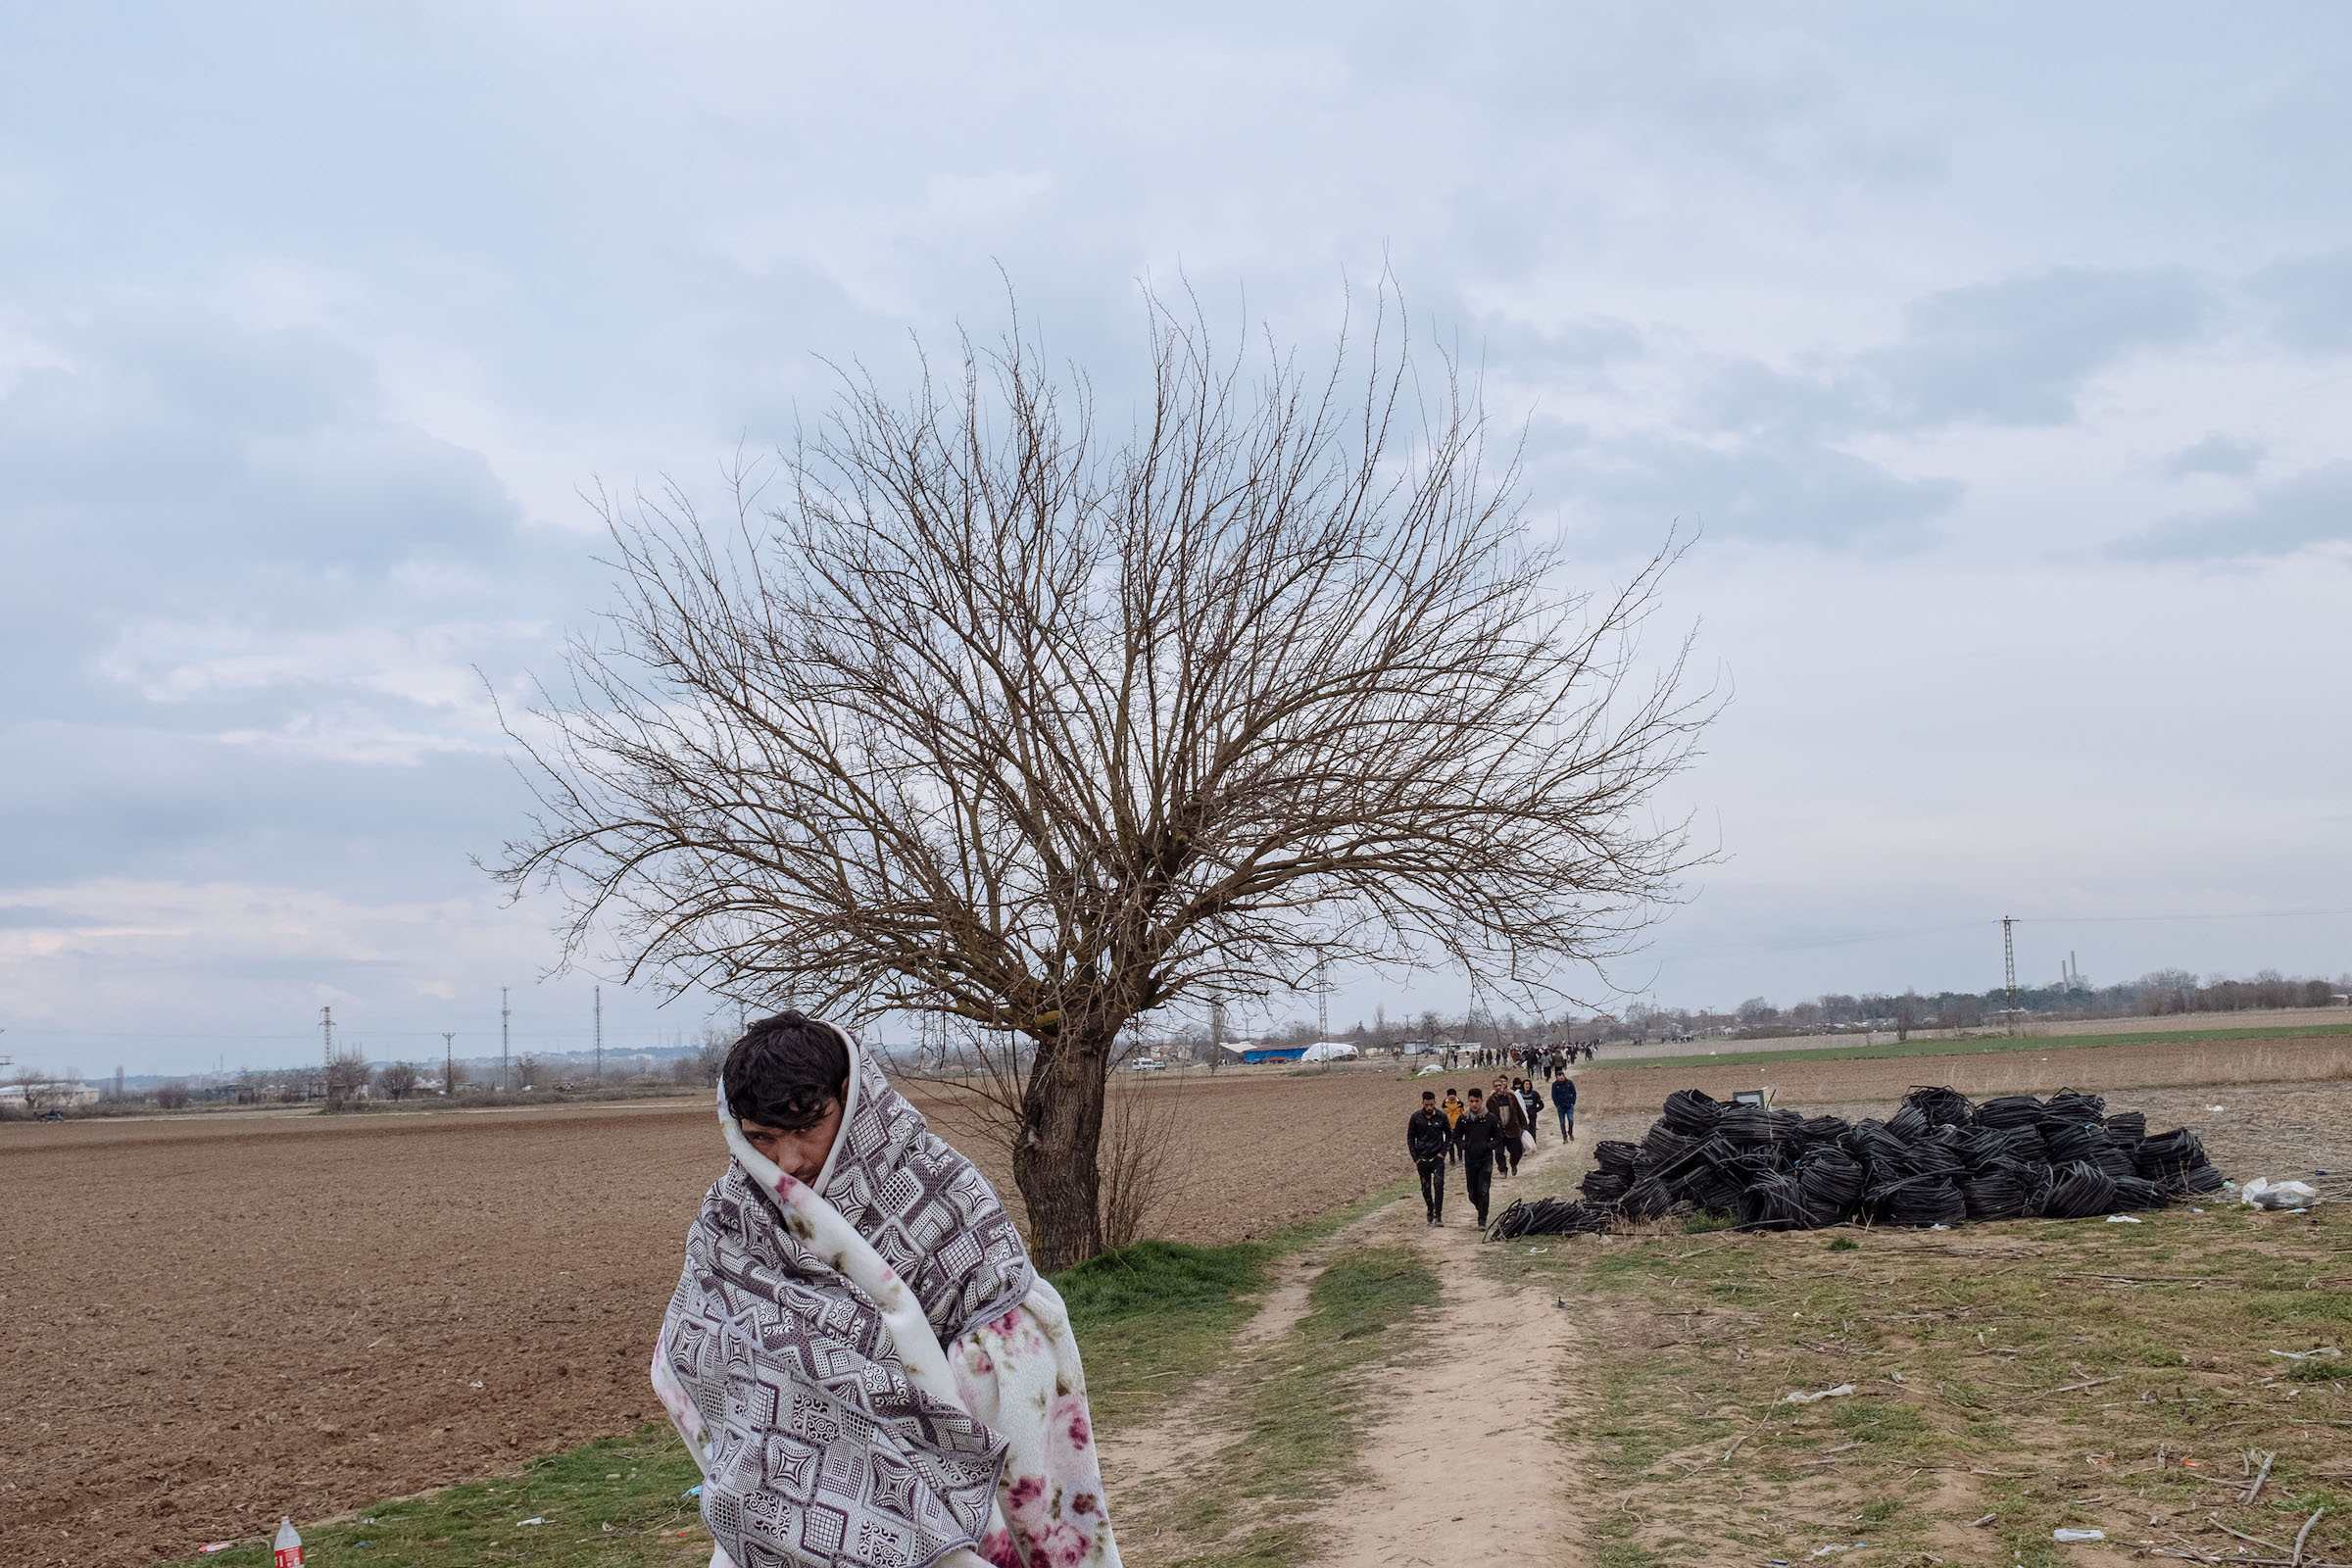 Migrants walk through a field toward the Turkey-Greece border.